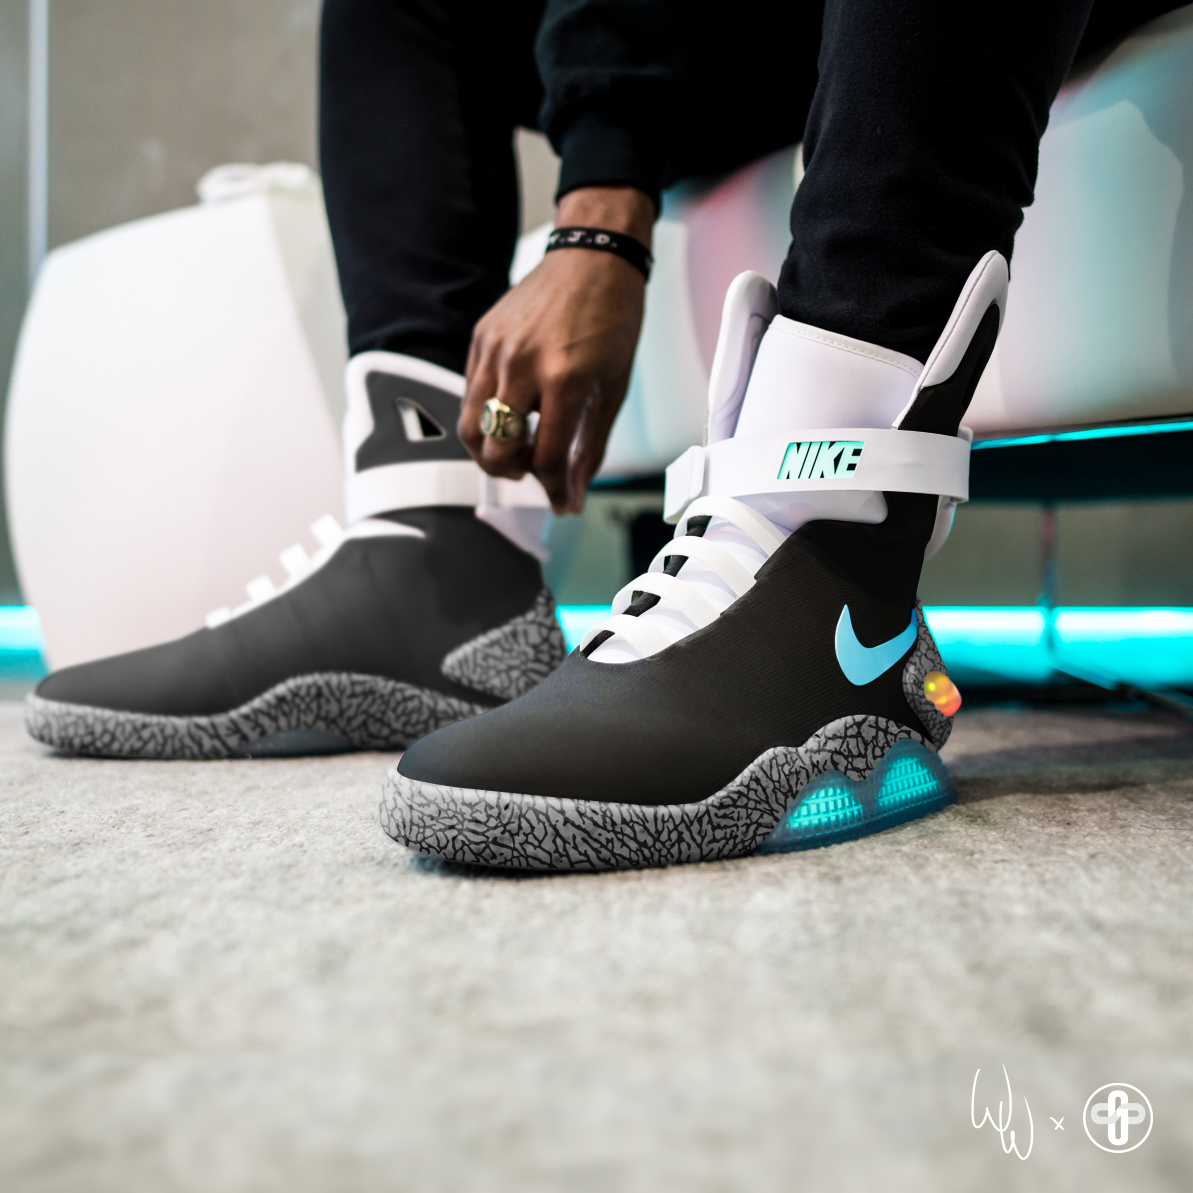 f4ad48678d Nike MAG Atmos Elephant | everyday style in 2019 | Nike mag, Nike ...